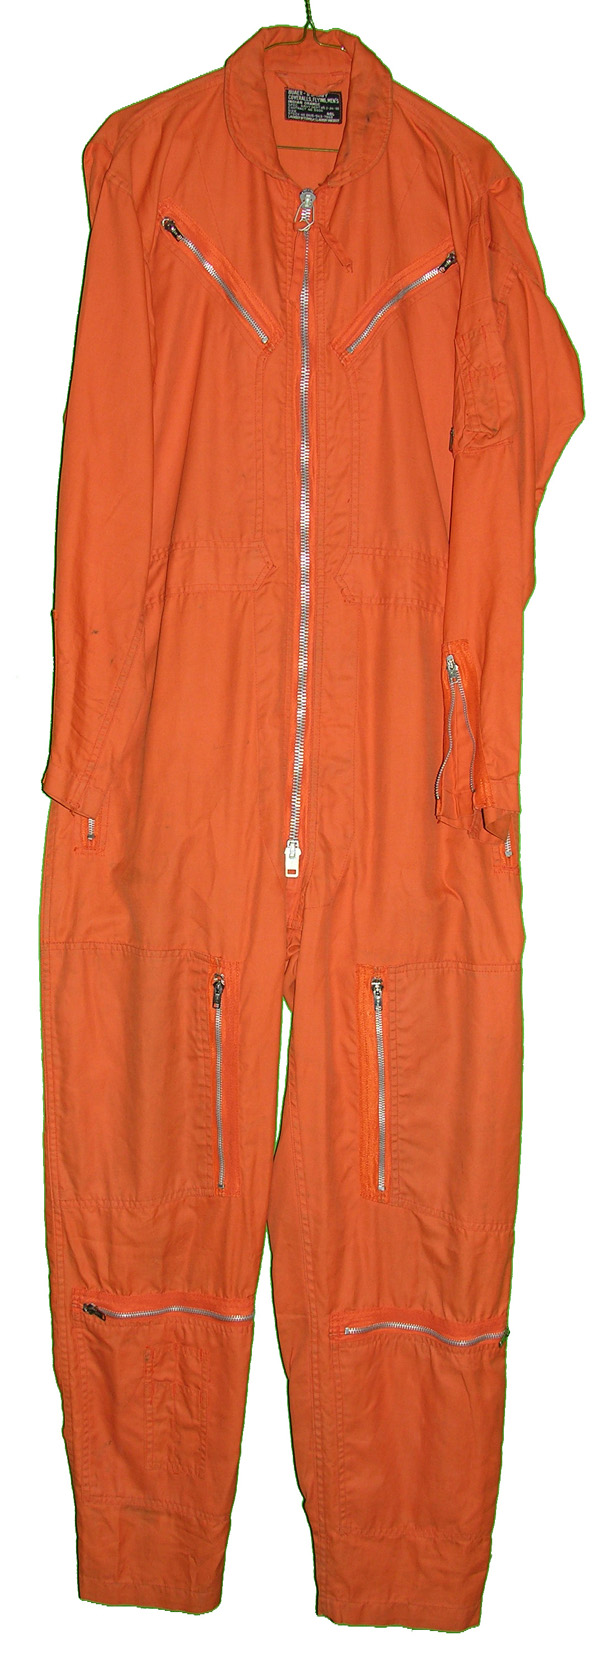 US Navy Indian Orange Flight Suit